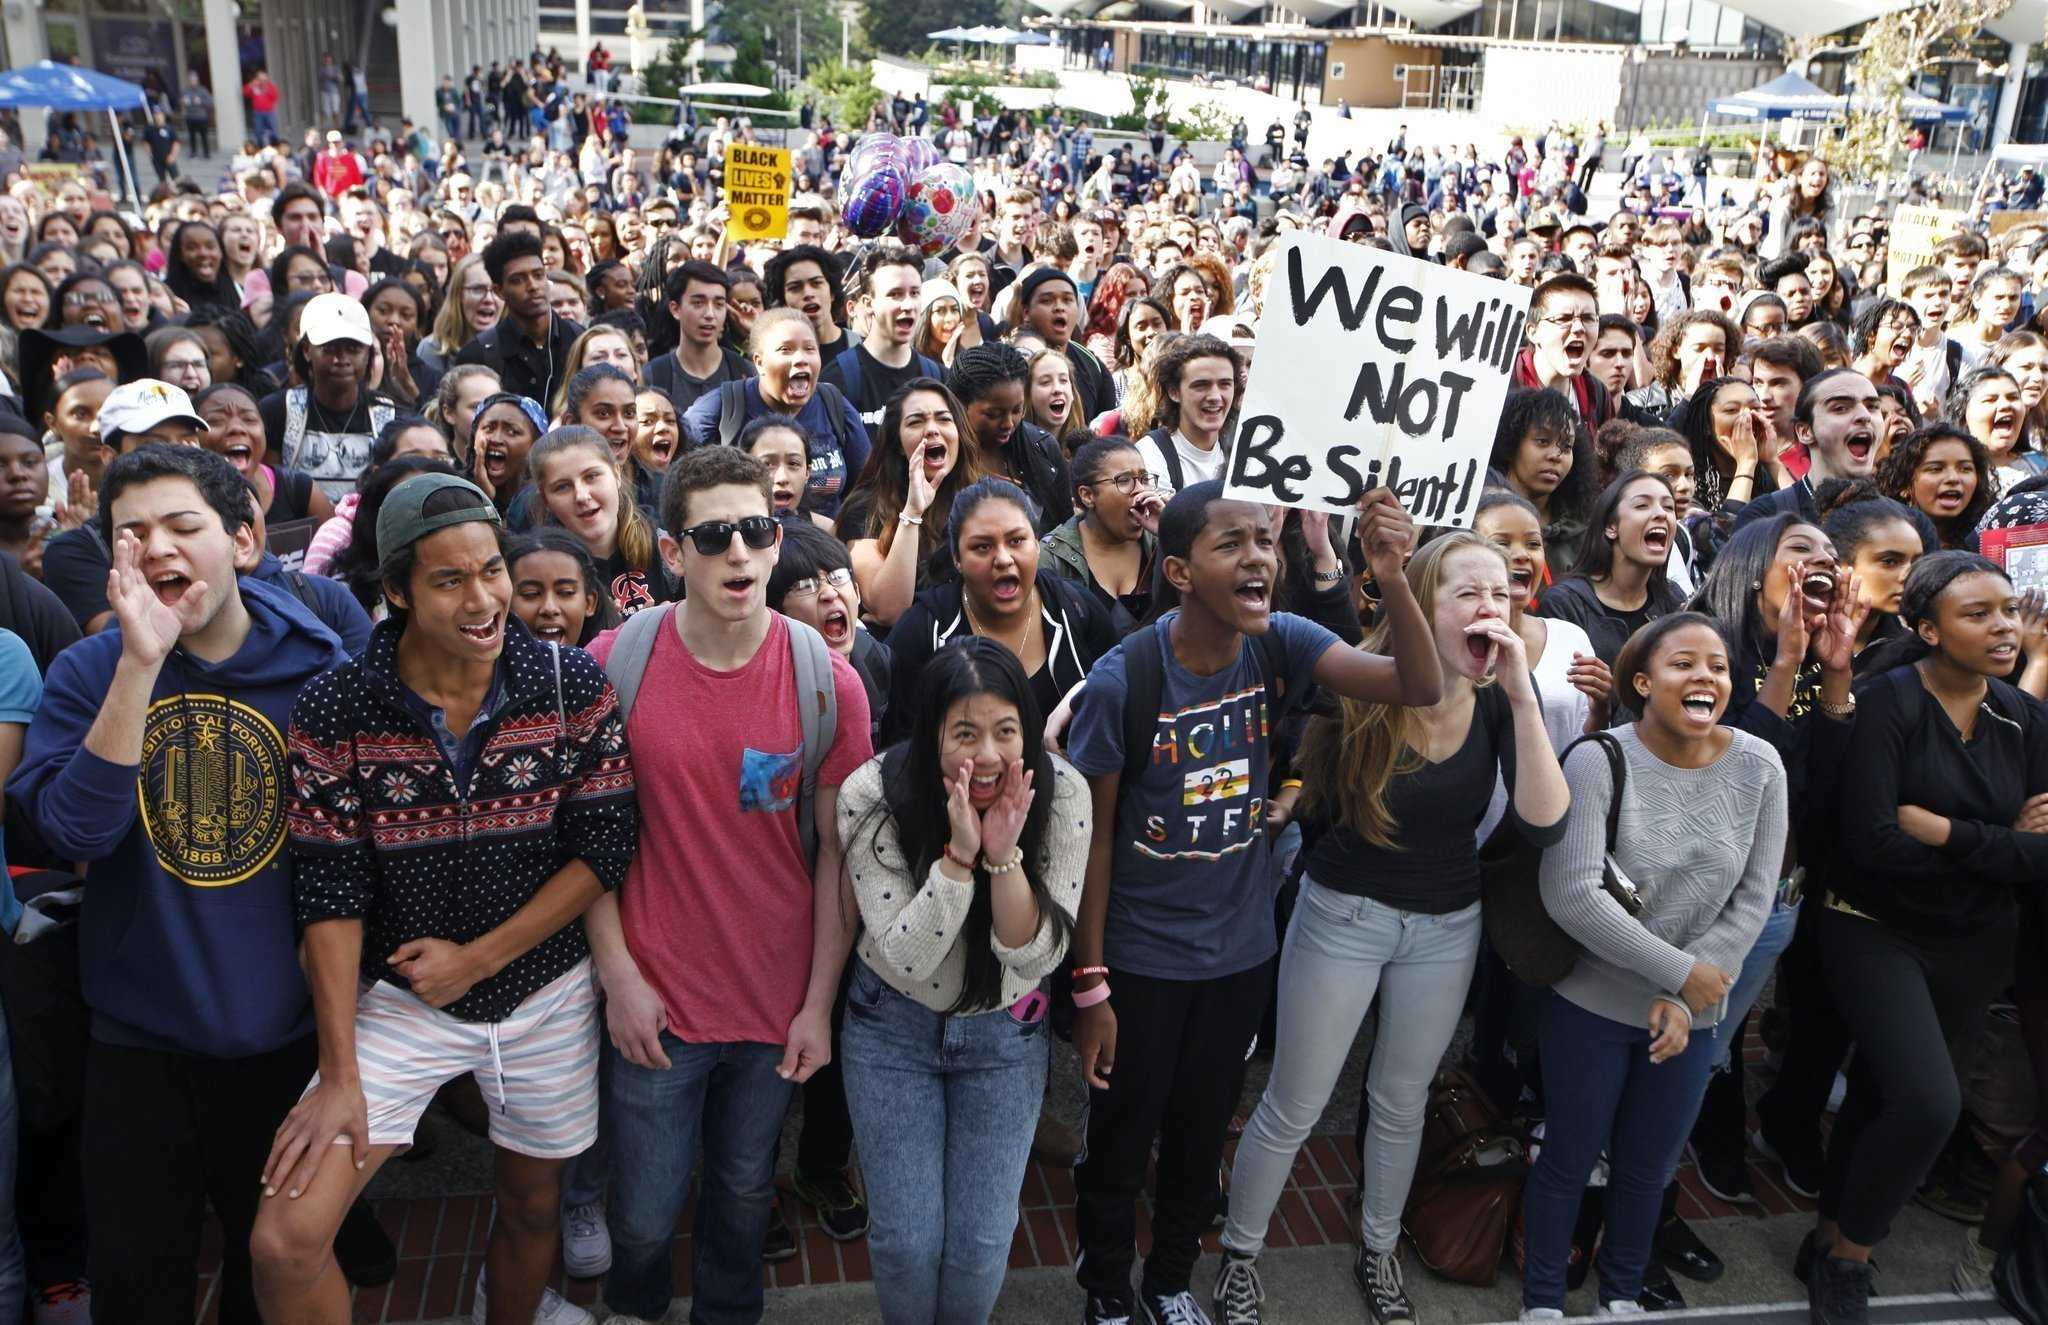 Students took to the streets to protest the President- Elect, Donald Trump. Berkeley is known for its historical protests during the civil rights movement.